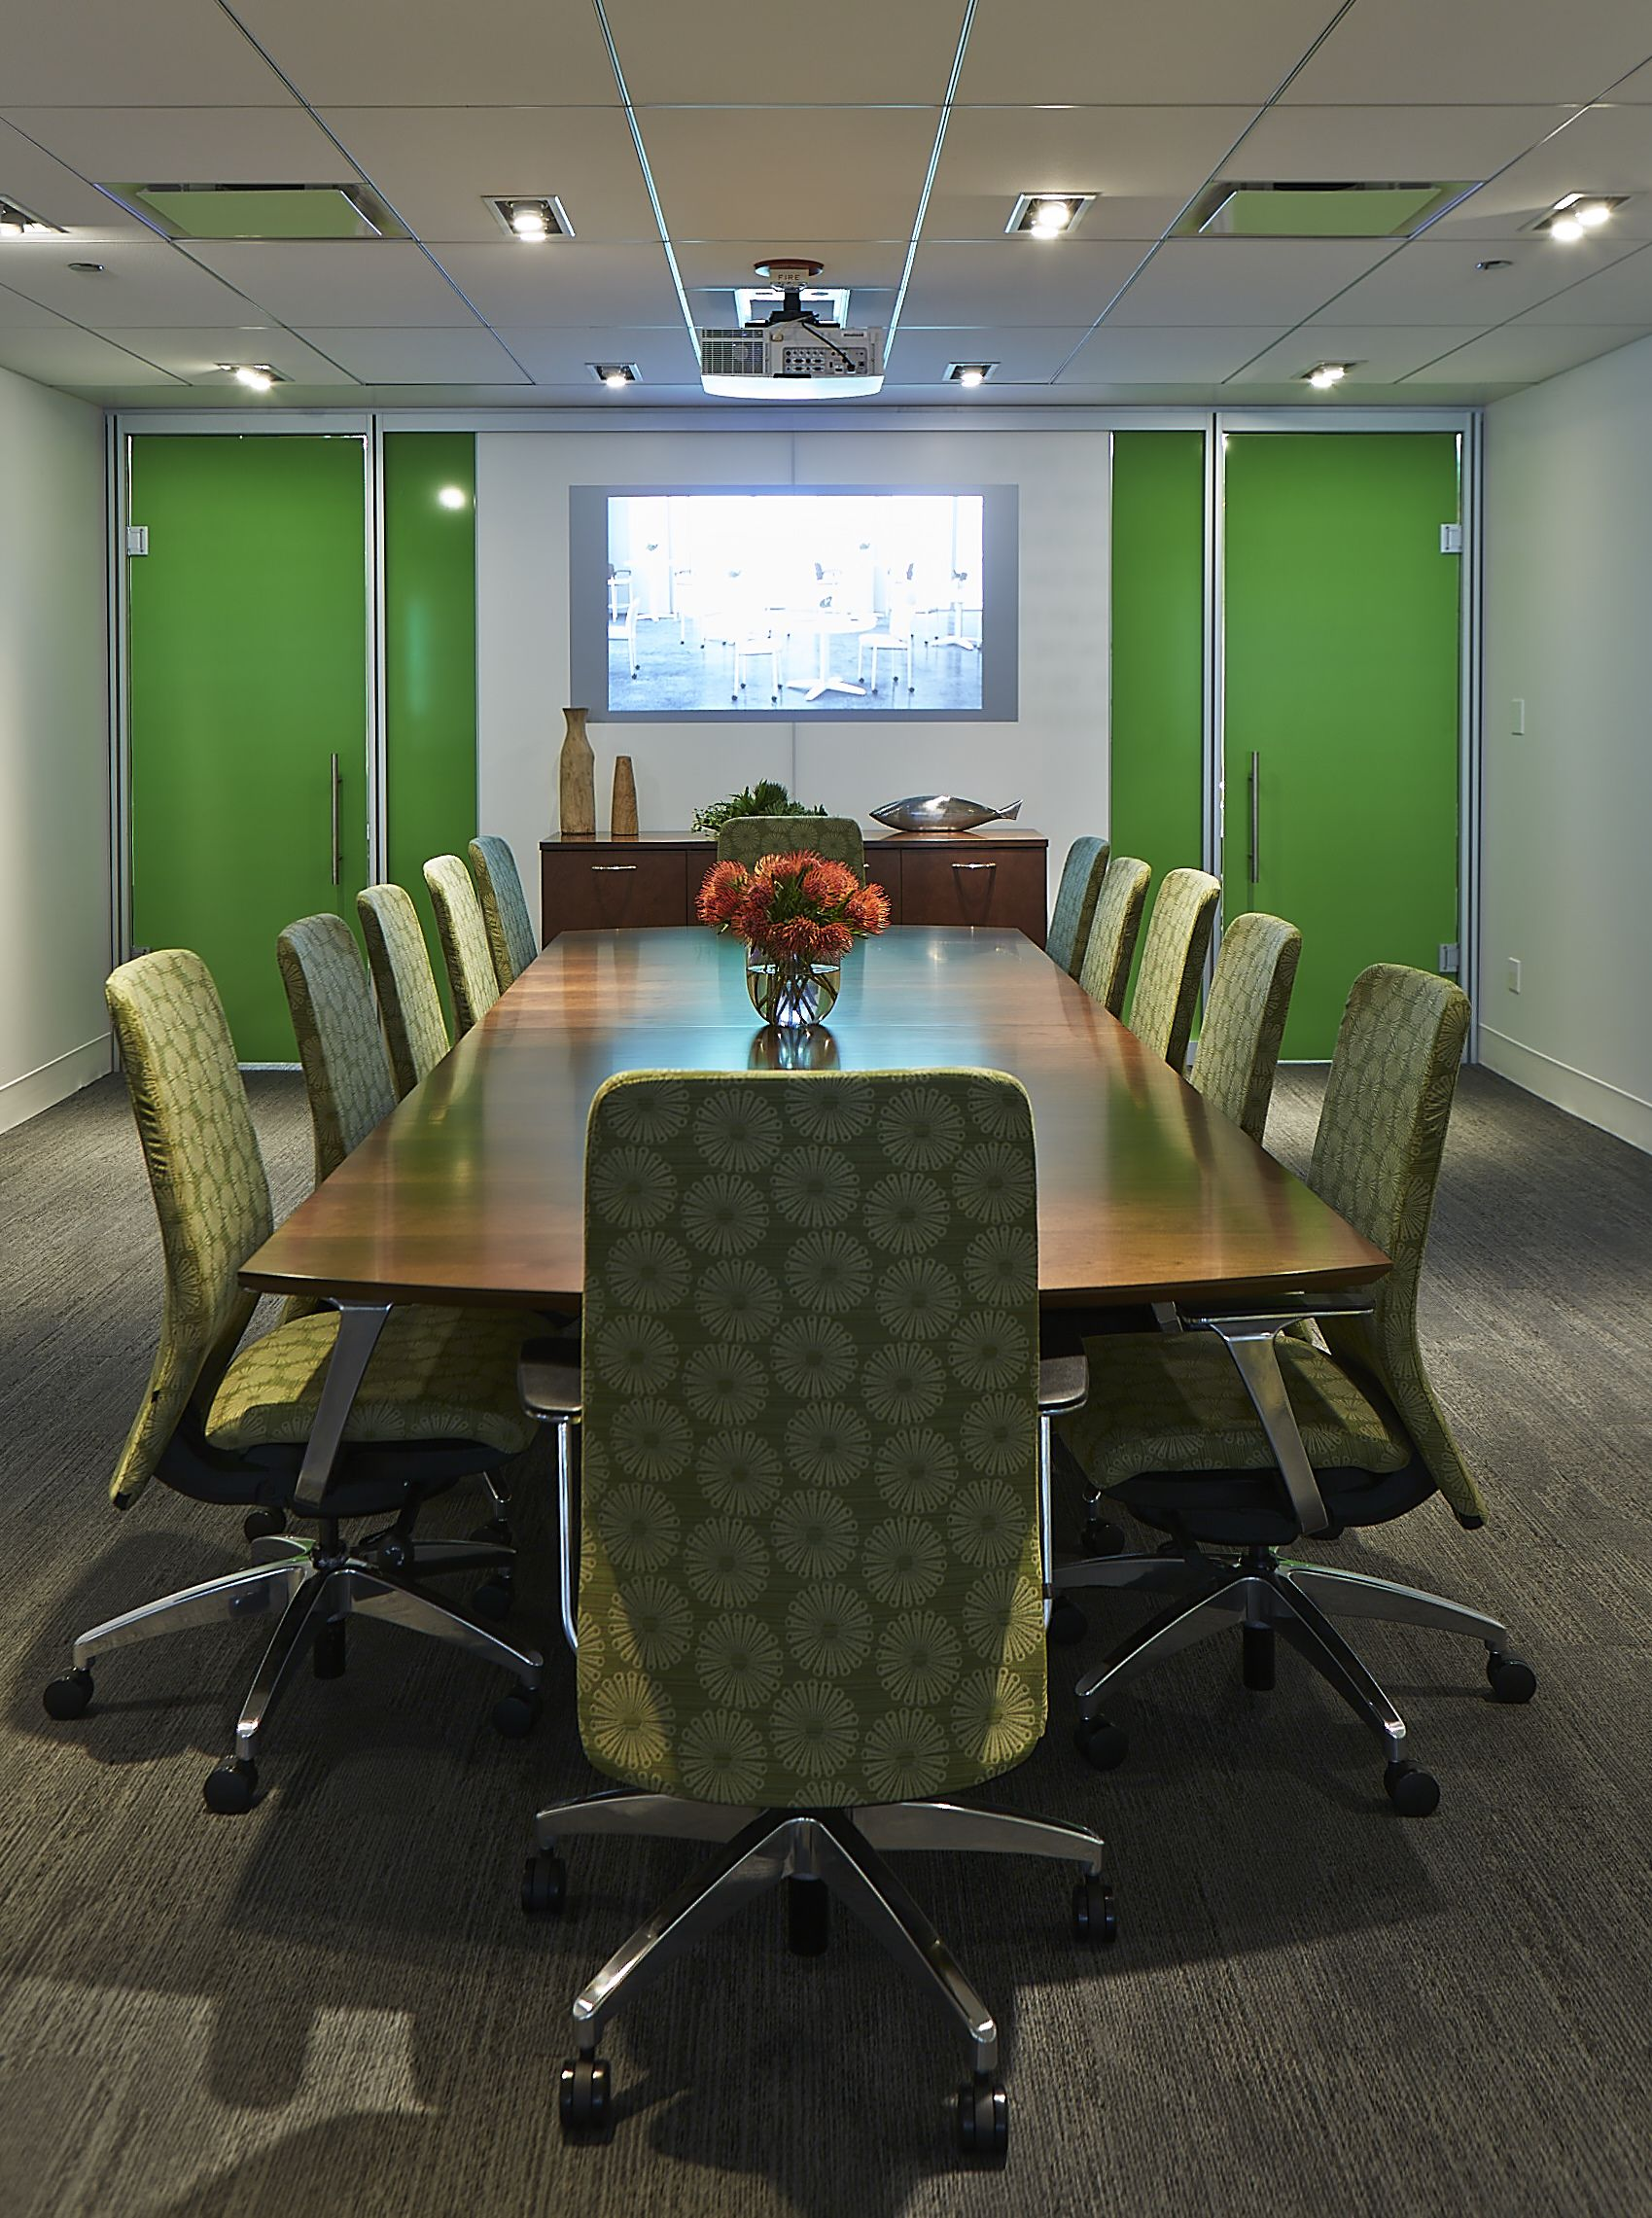 Showcasing The Very Best In Office Furniture Design